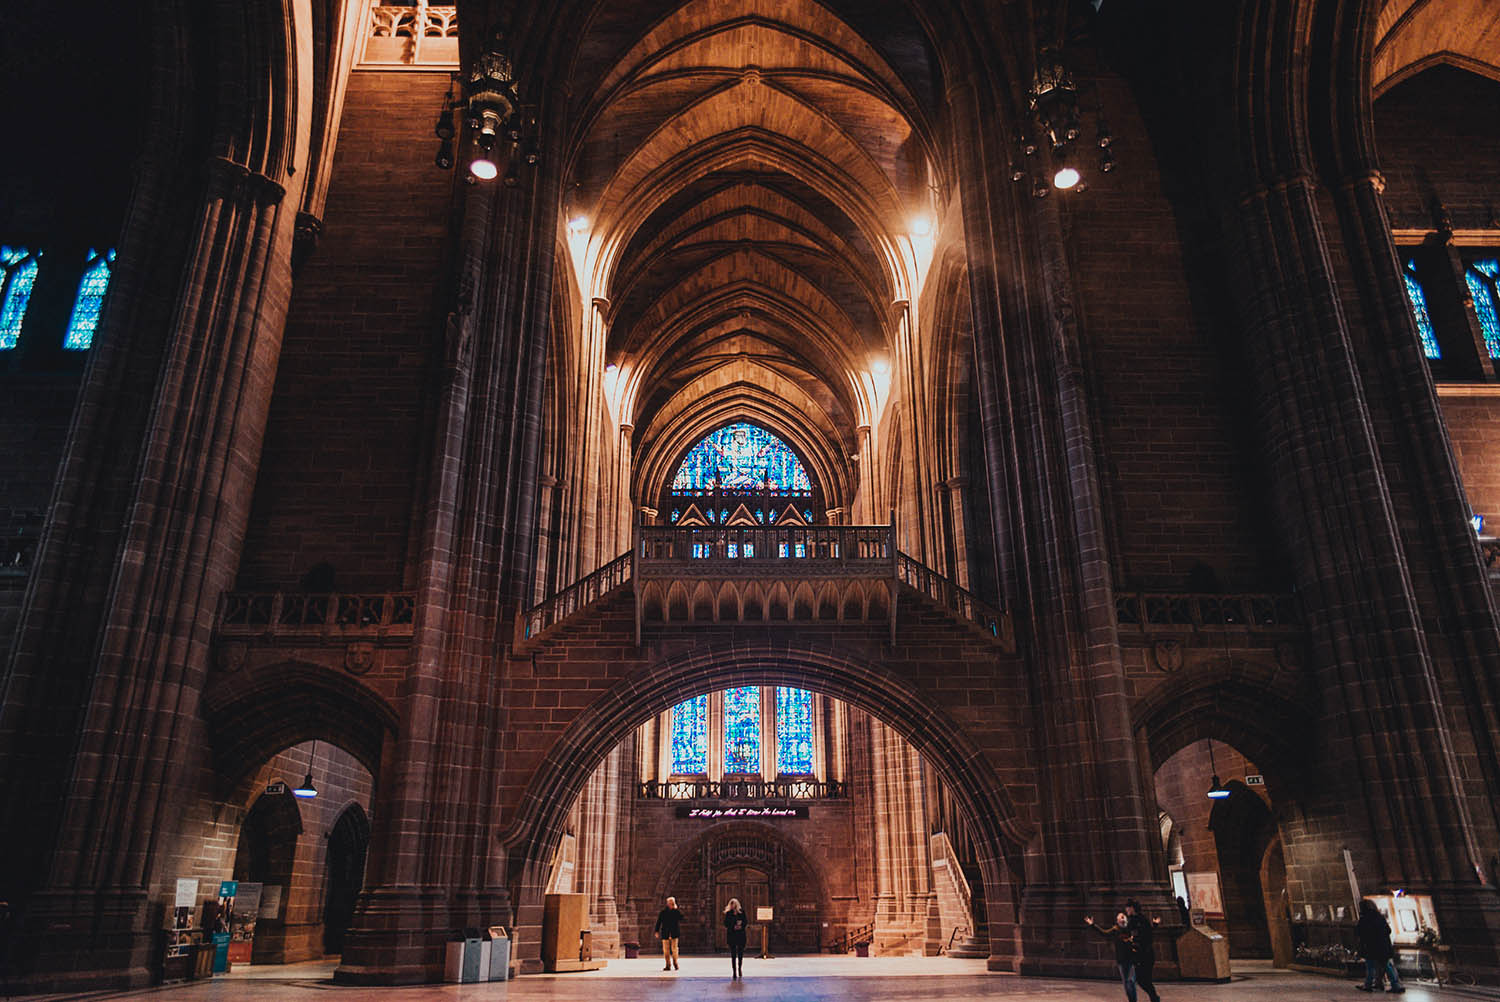 Inside the beautiful Liverpool Cathedral